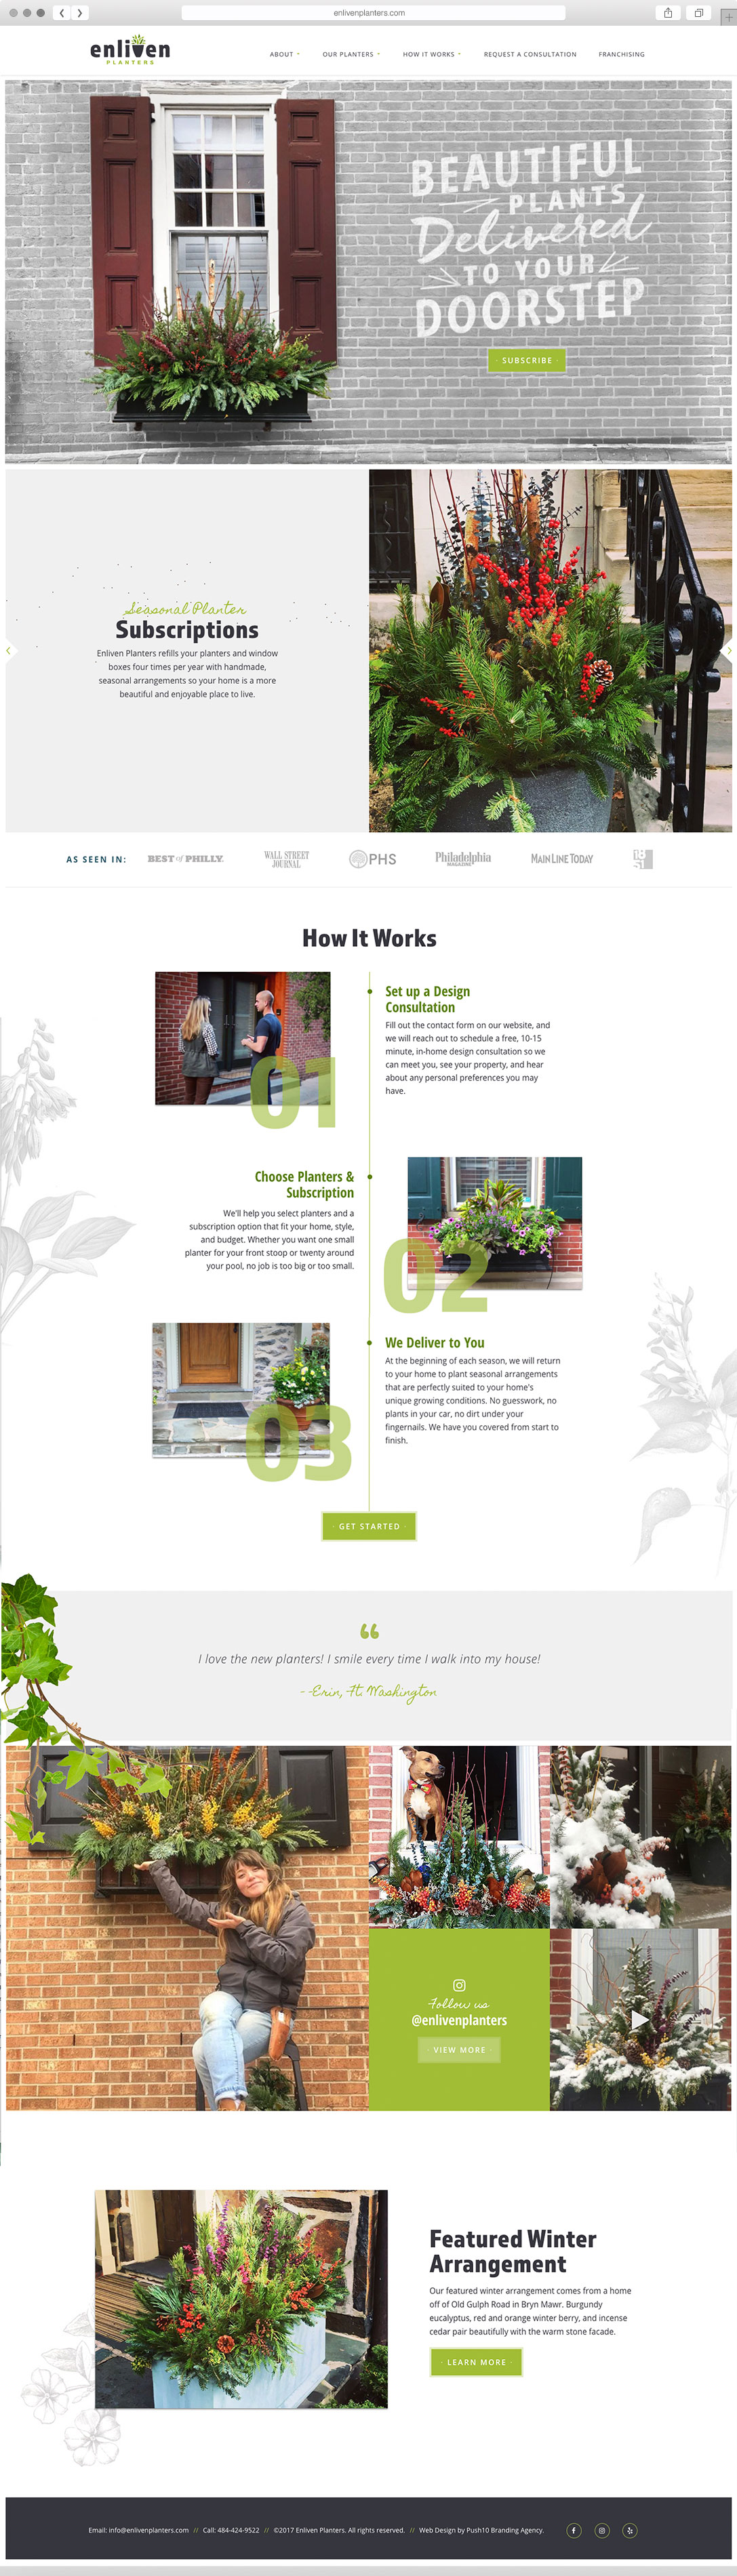 Website Design and Development for Enliven Planters Landscaping in Philadelphia